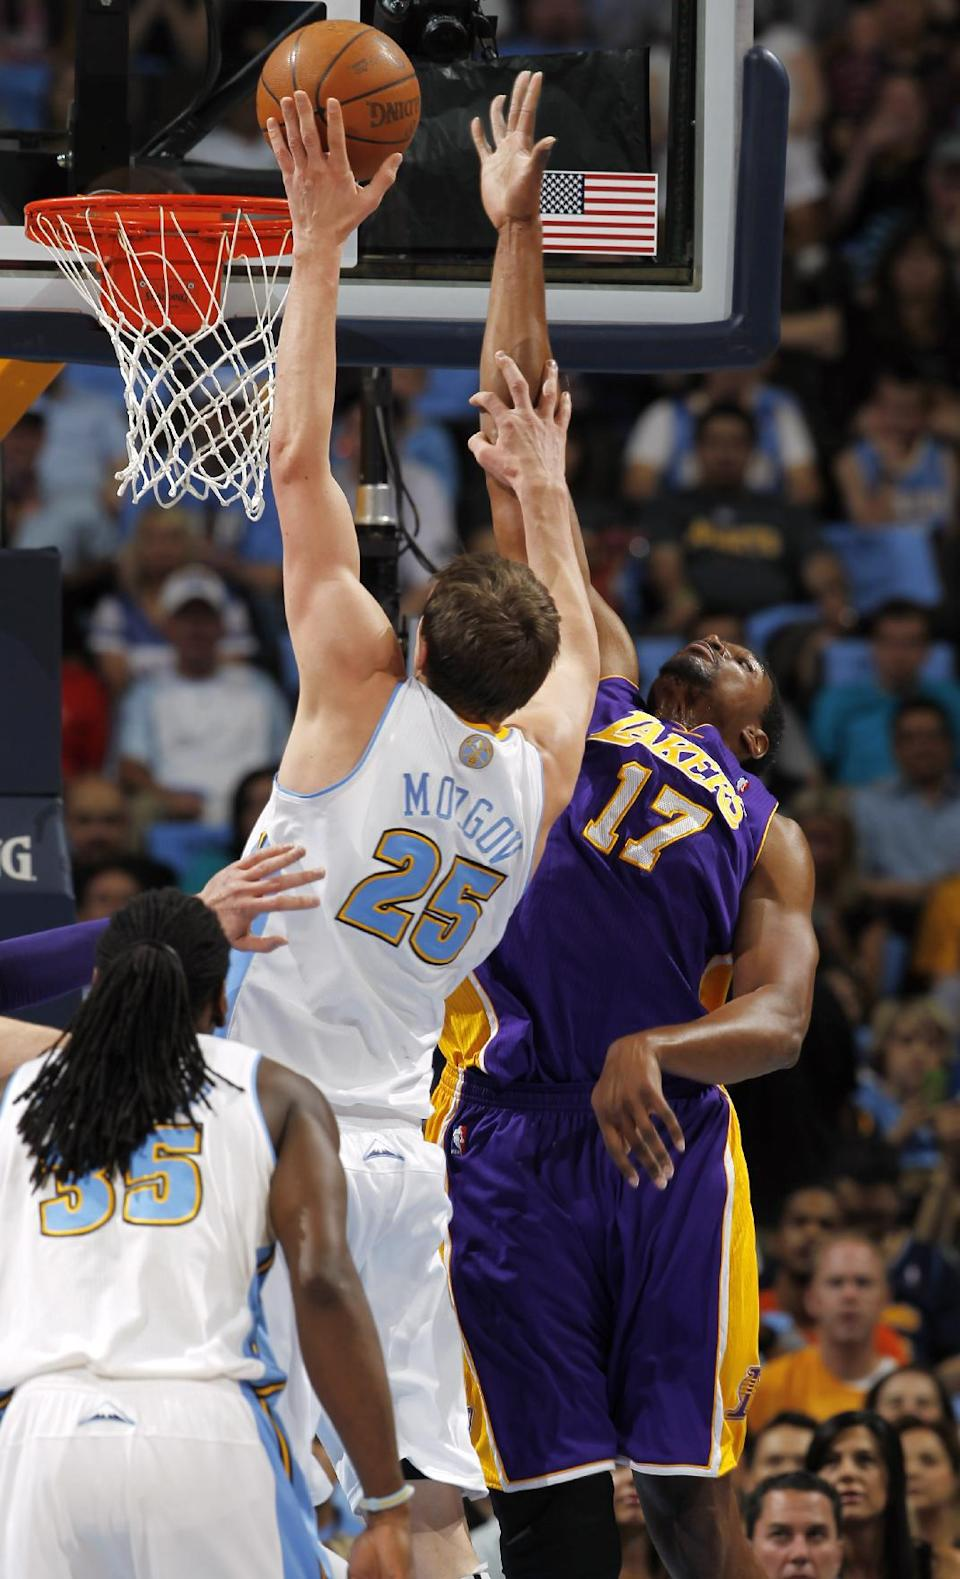 Los Angeles Lakers center Andrew Bynum, right, reaches up to stop a shot by Denver Nuggets center Timofey Mozgov, of Russia, in the first quarter of Game 3 of the teams' first-round NBA playoff series in Denver on Friday, May 4, 2012. (AP Photo/David Zalubowski)